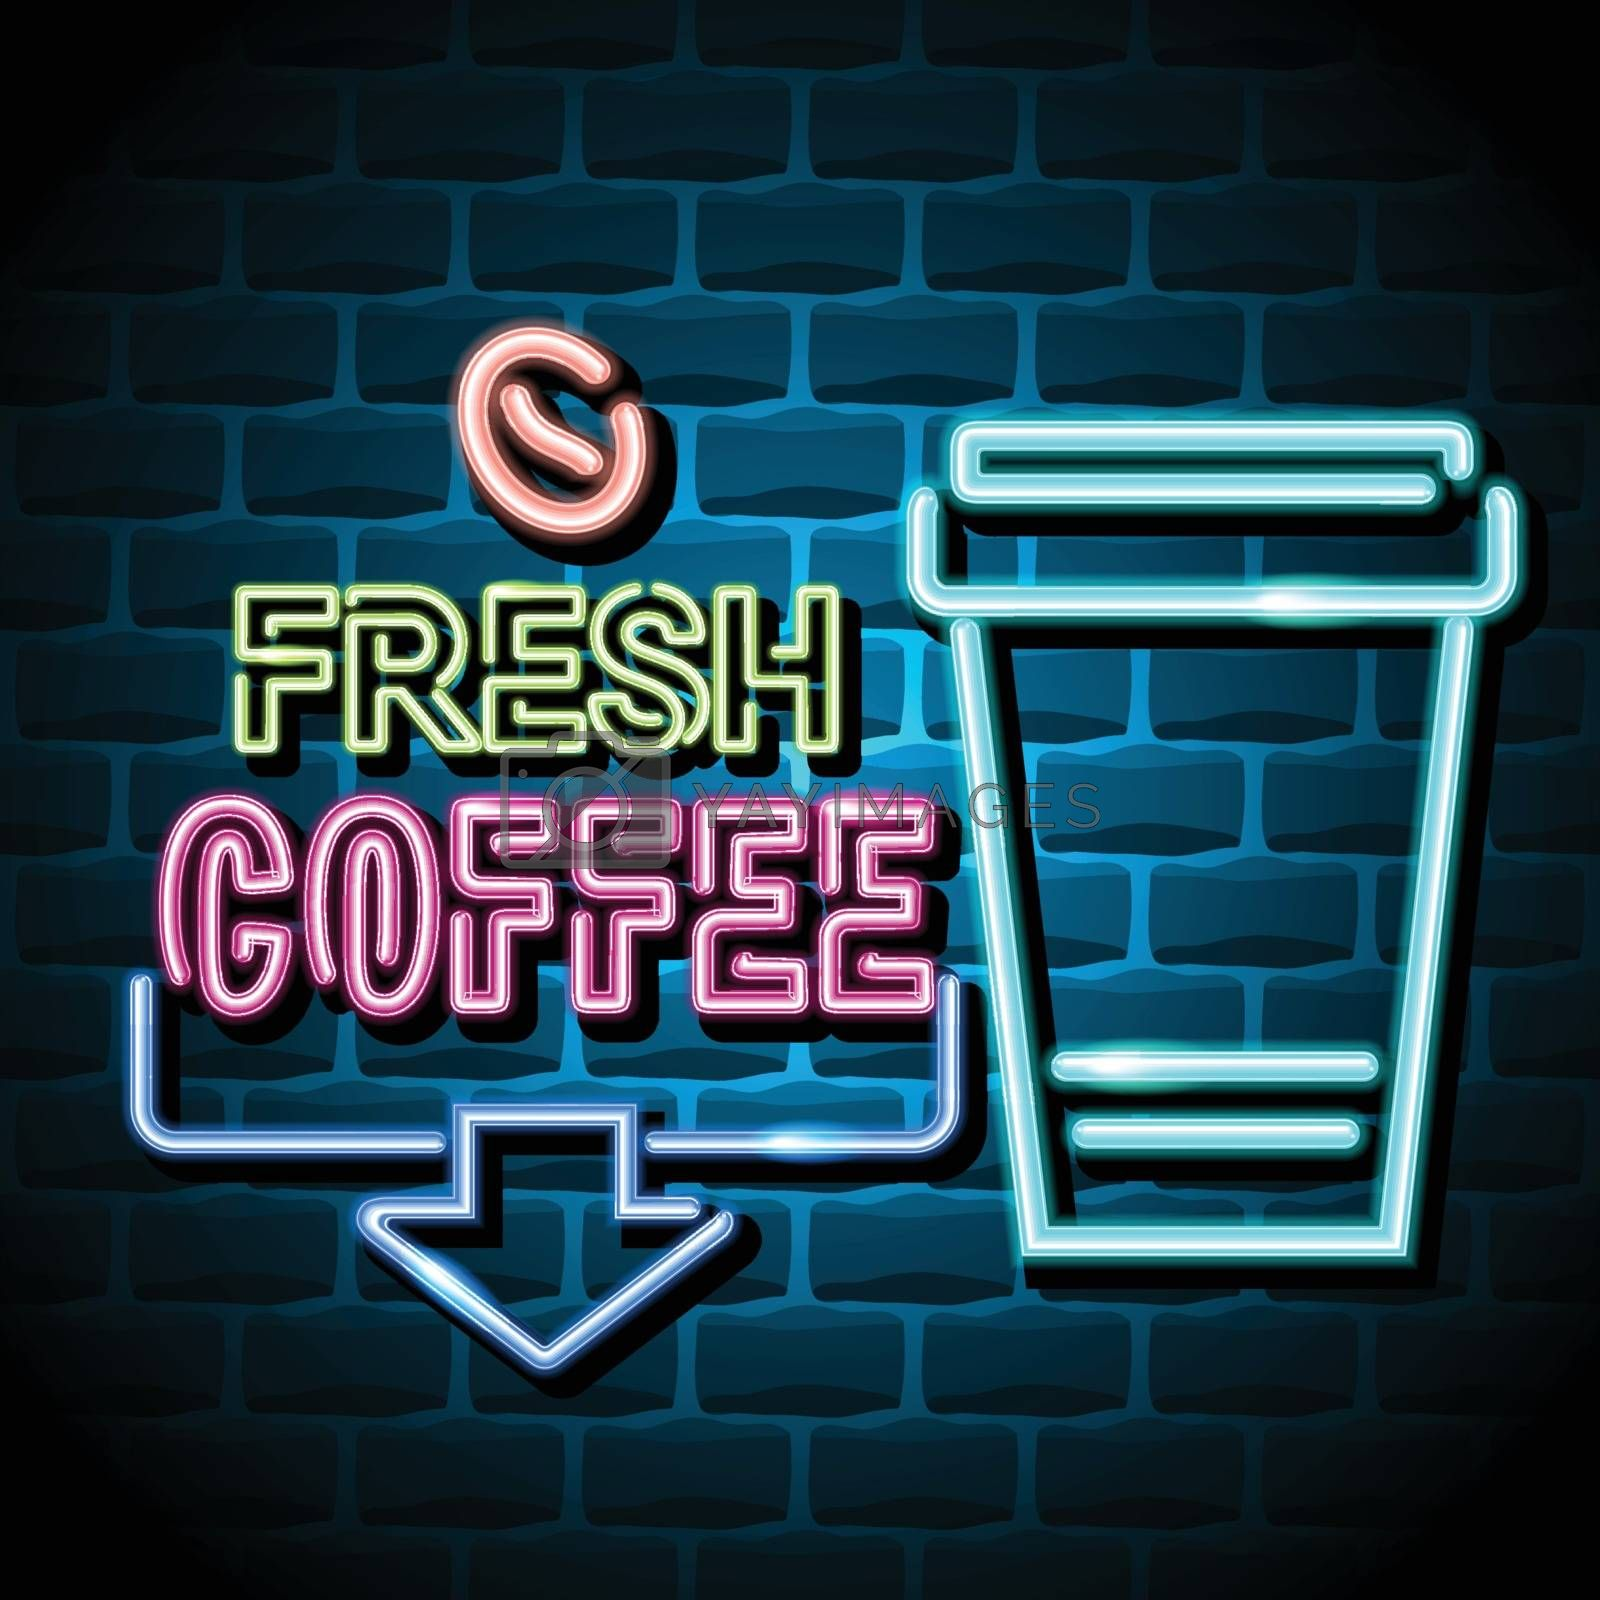 fresh coffee advertising sign. Vector